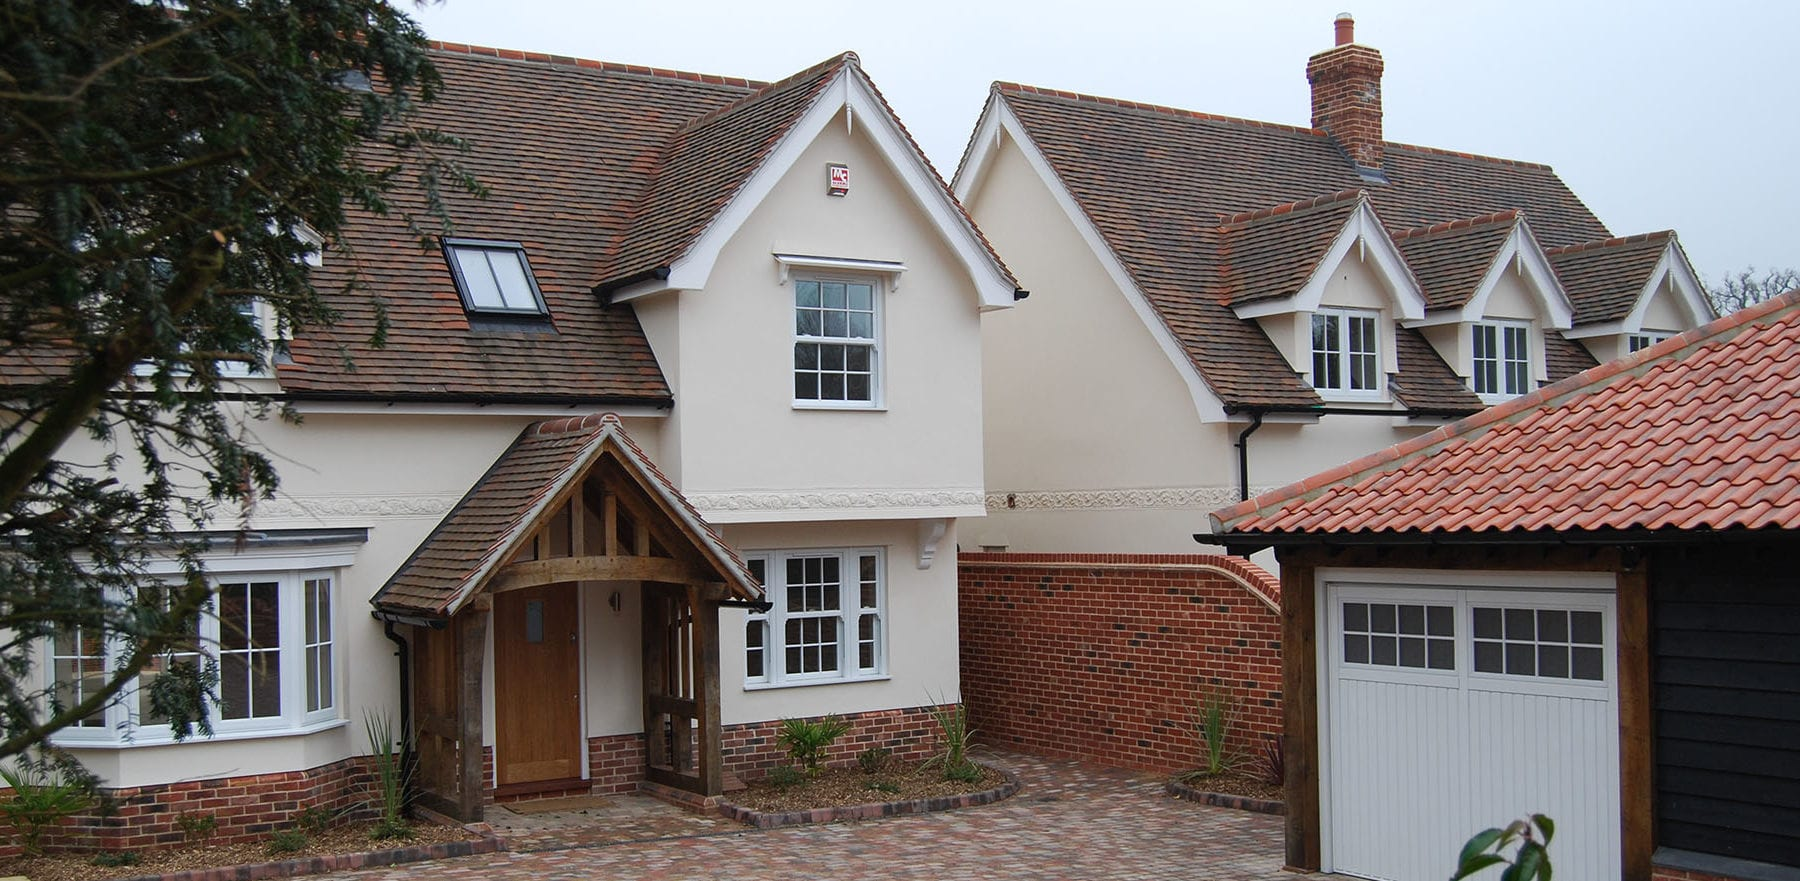 Lifestiles - Handcrafted Autumn Clay Roof Tiles - Bergholt, England